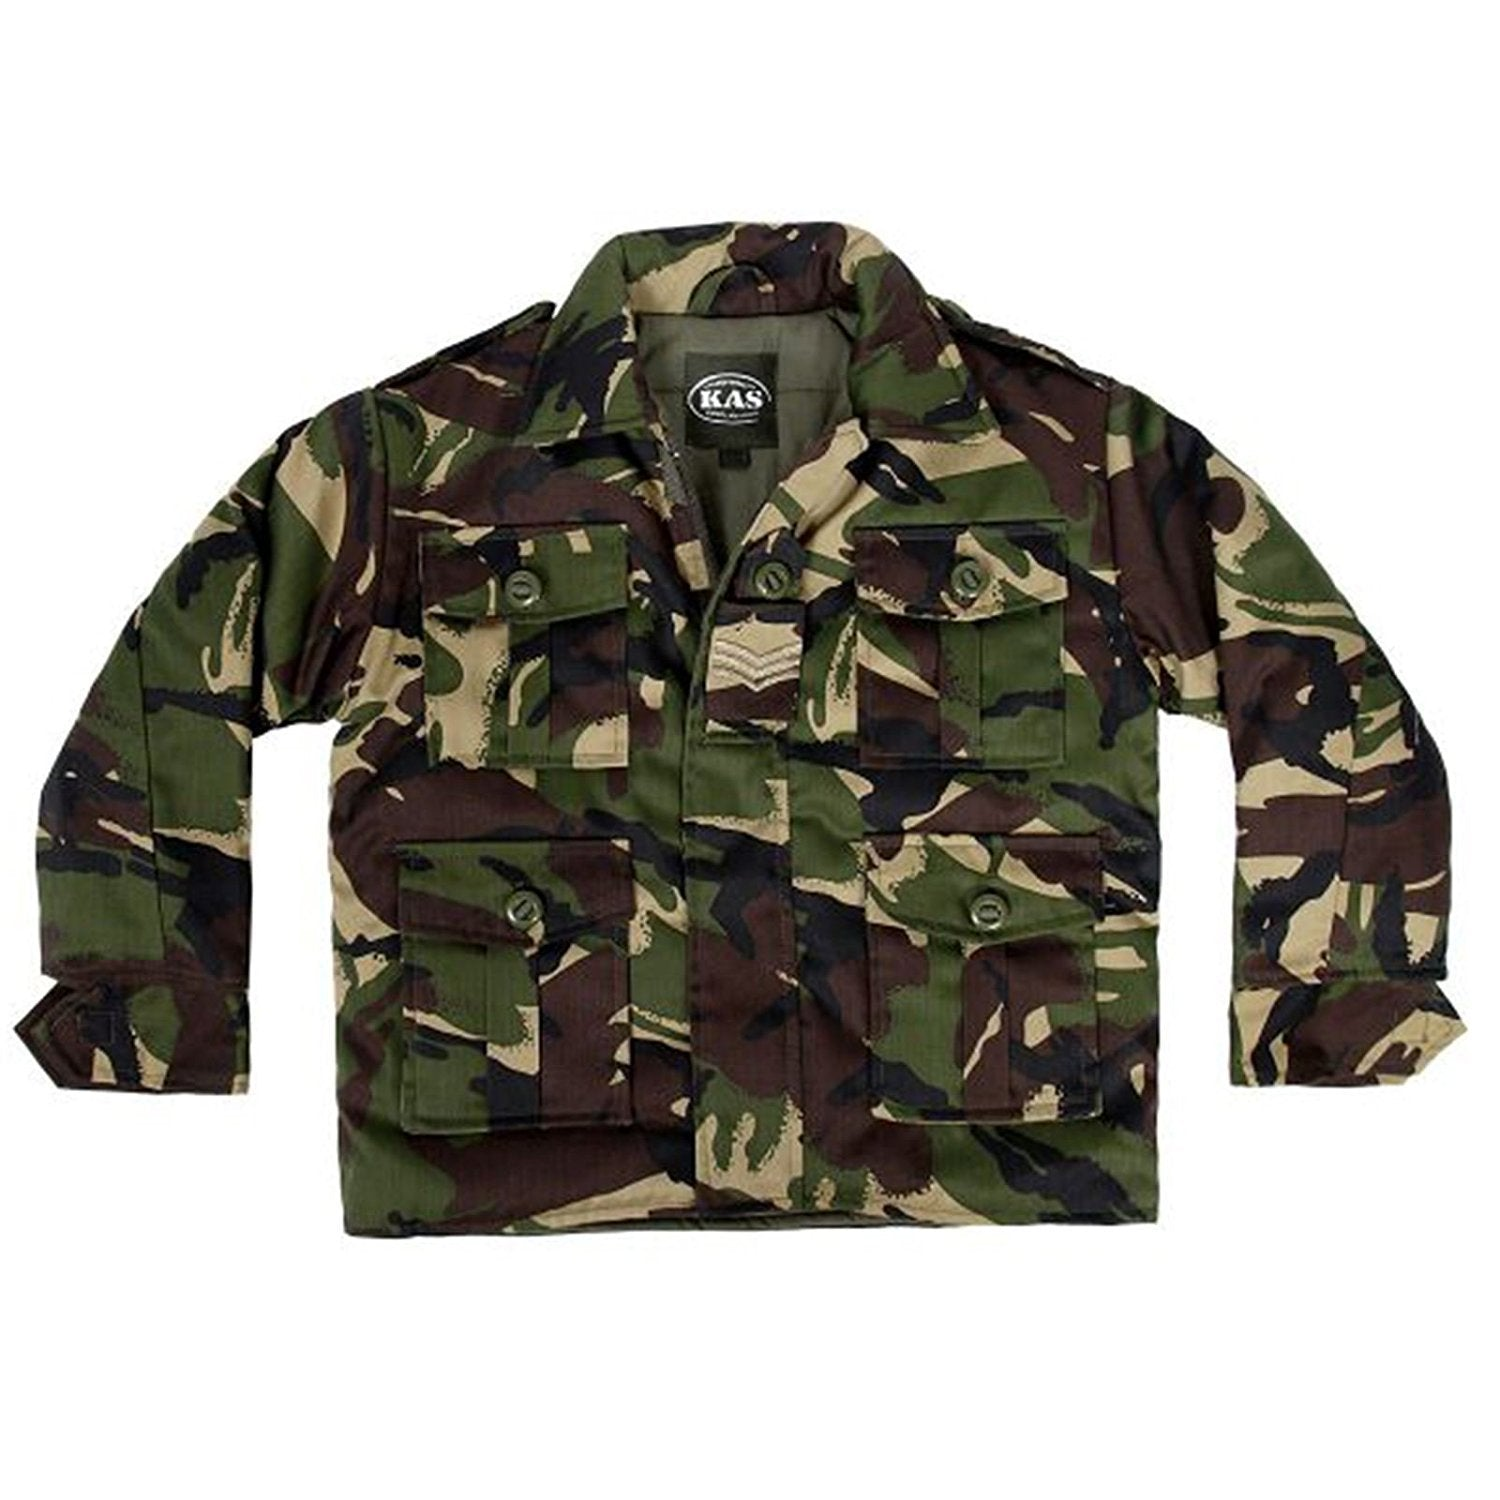 KAS KIDS BOYS COMBAT PADDED JACKET ARMY CLOTHING UNIFORM CAMO CADET CAMOUFLAGE - 7/8 yrs - Bear Essentials Clothing Company